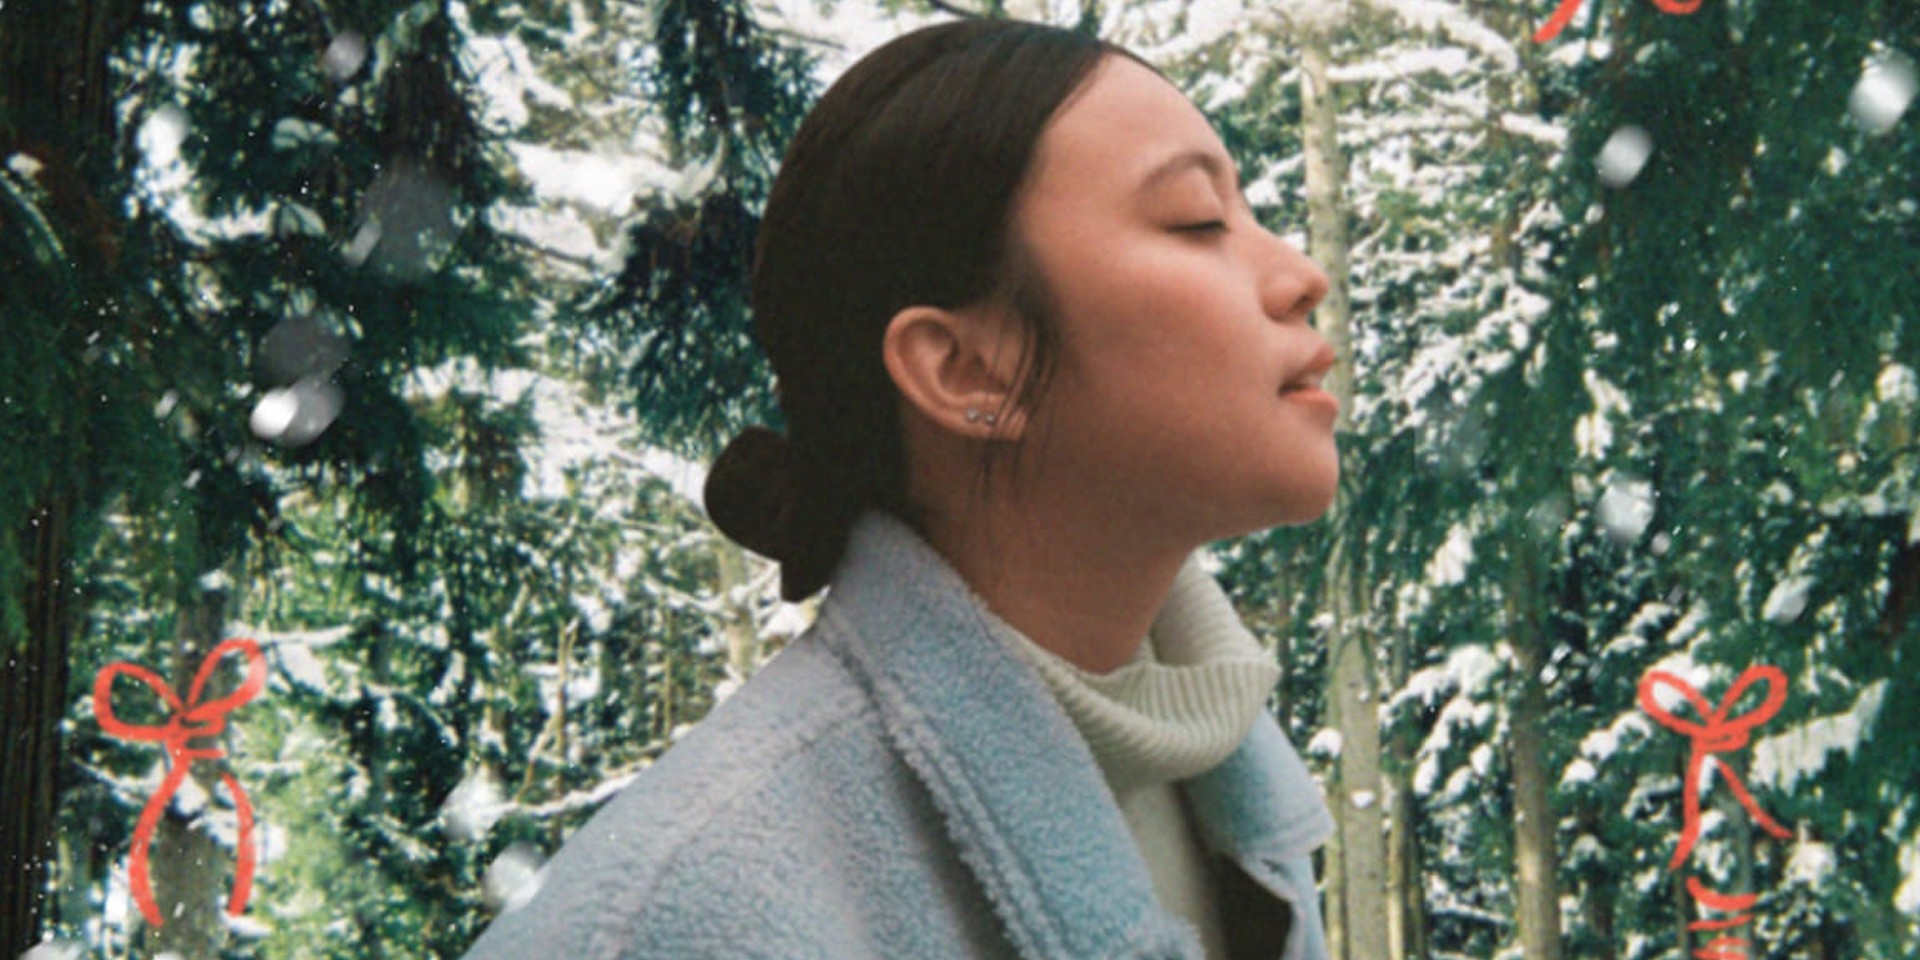 Reese Lansangan welcomes the holiday spirit with a Christmas medley and virtual reality light show